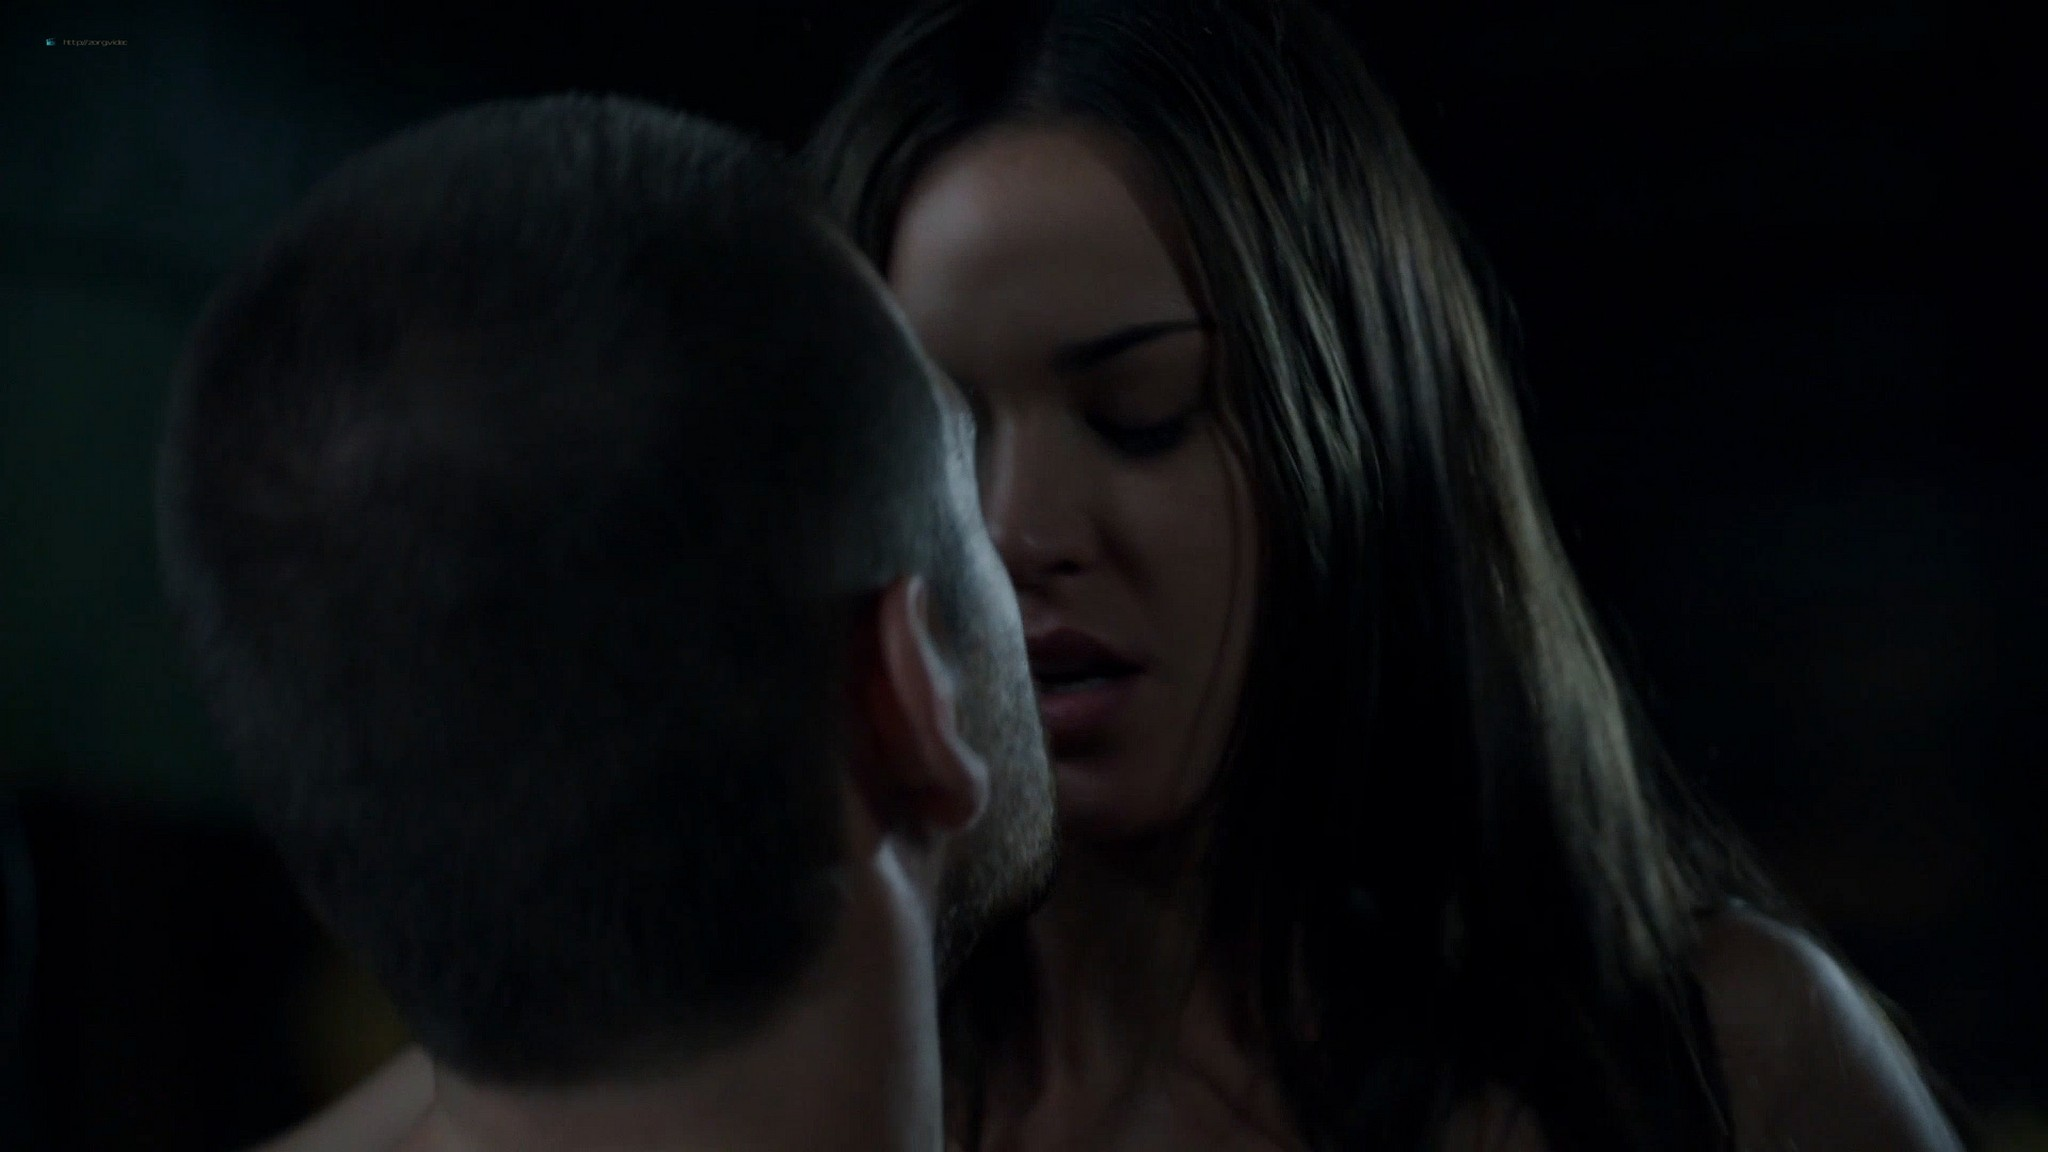 Odette Annable nudehot sex butt and side boob - Banshee (2014) s2e1-2 HD 1080p (9)